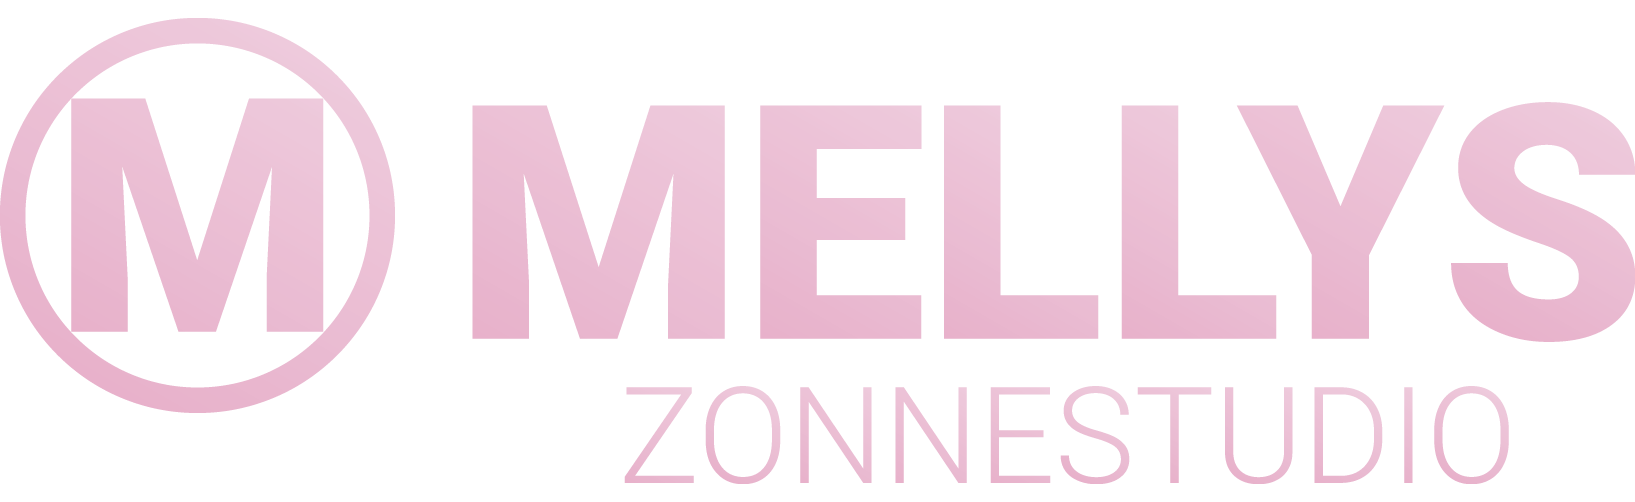 Mellys Zonnestudio- Logo- Website- Cryostudio